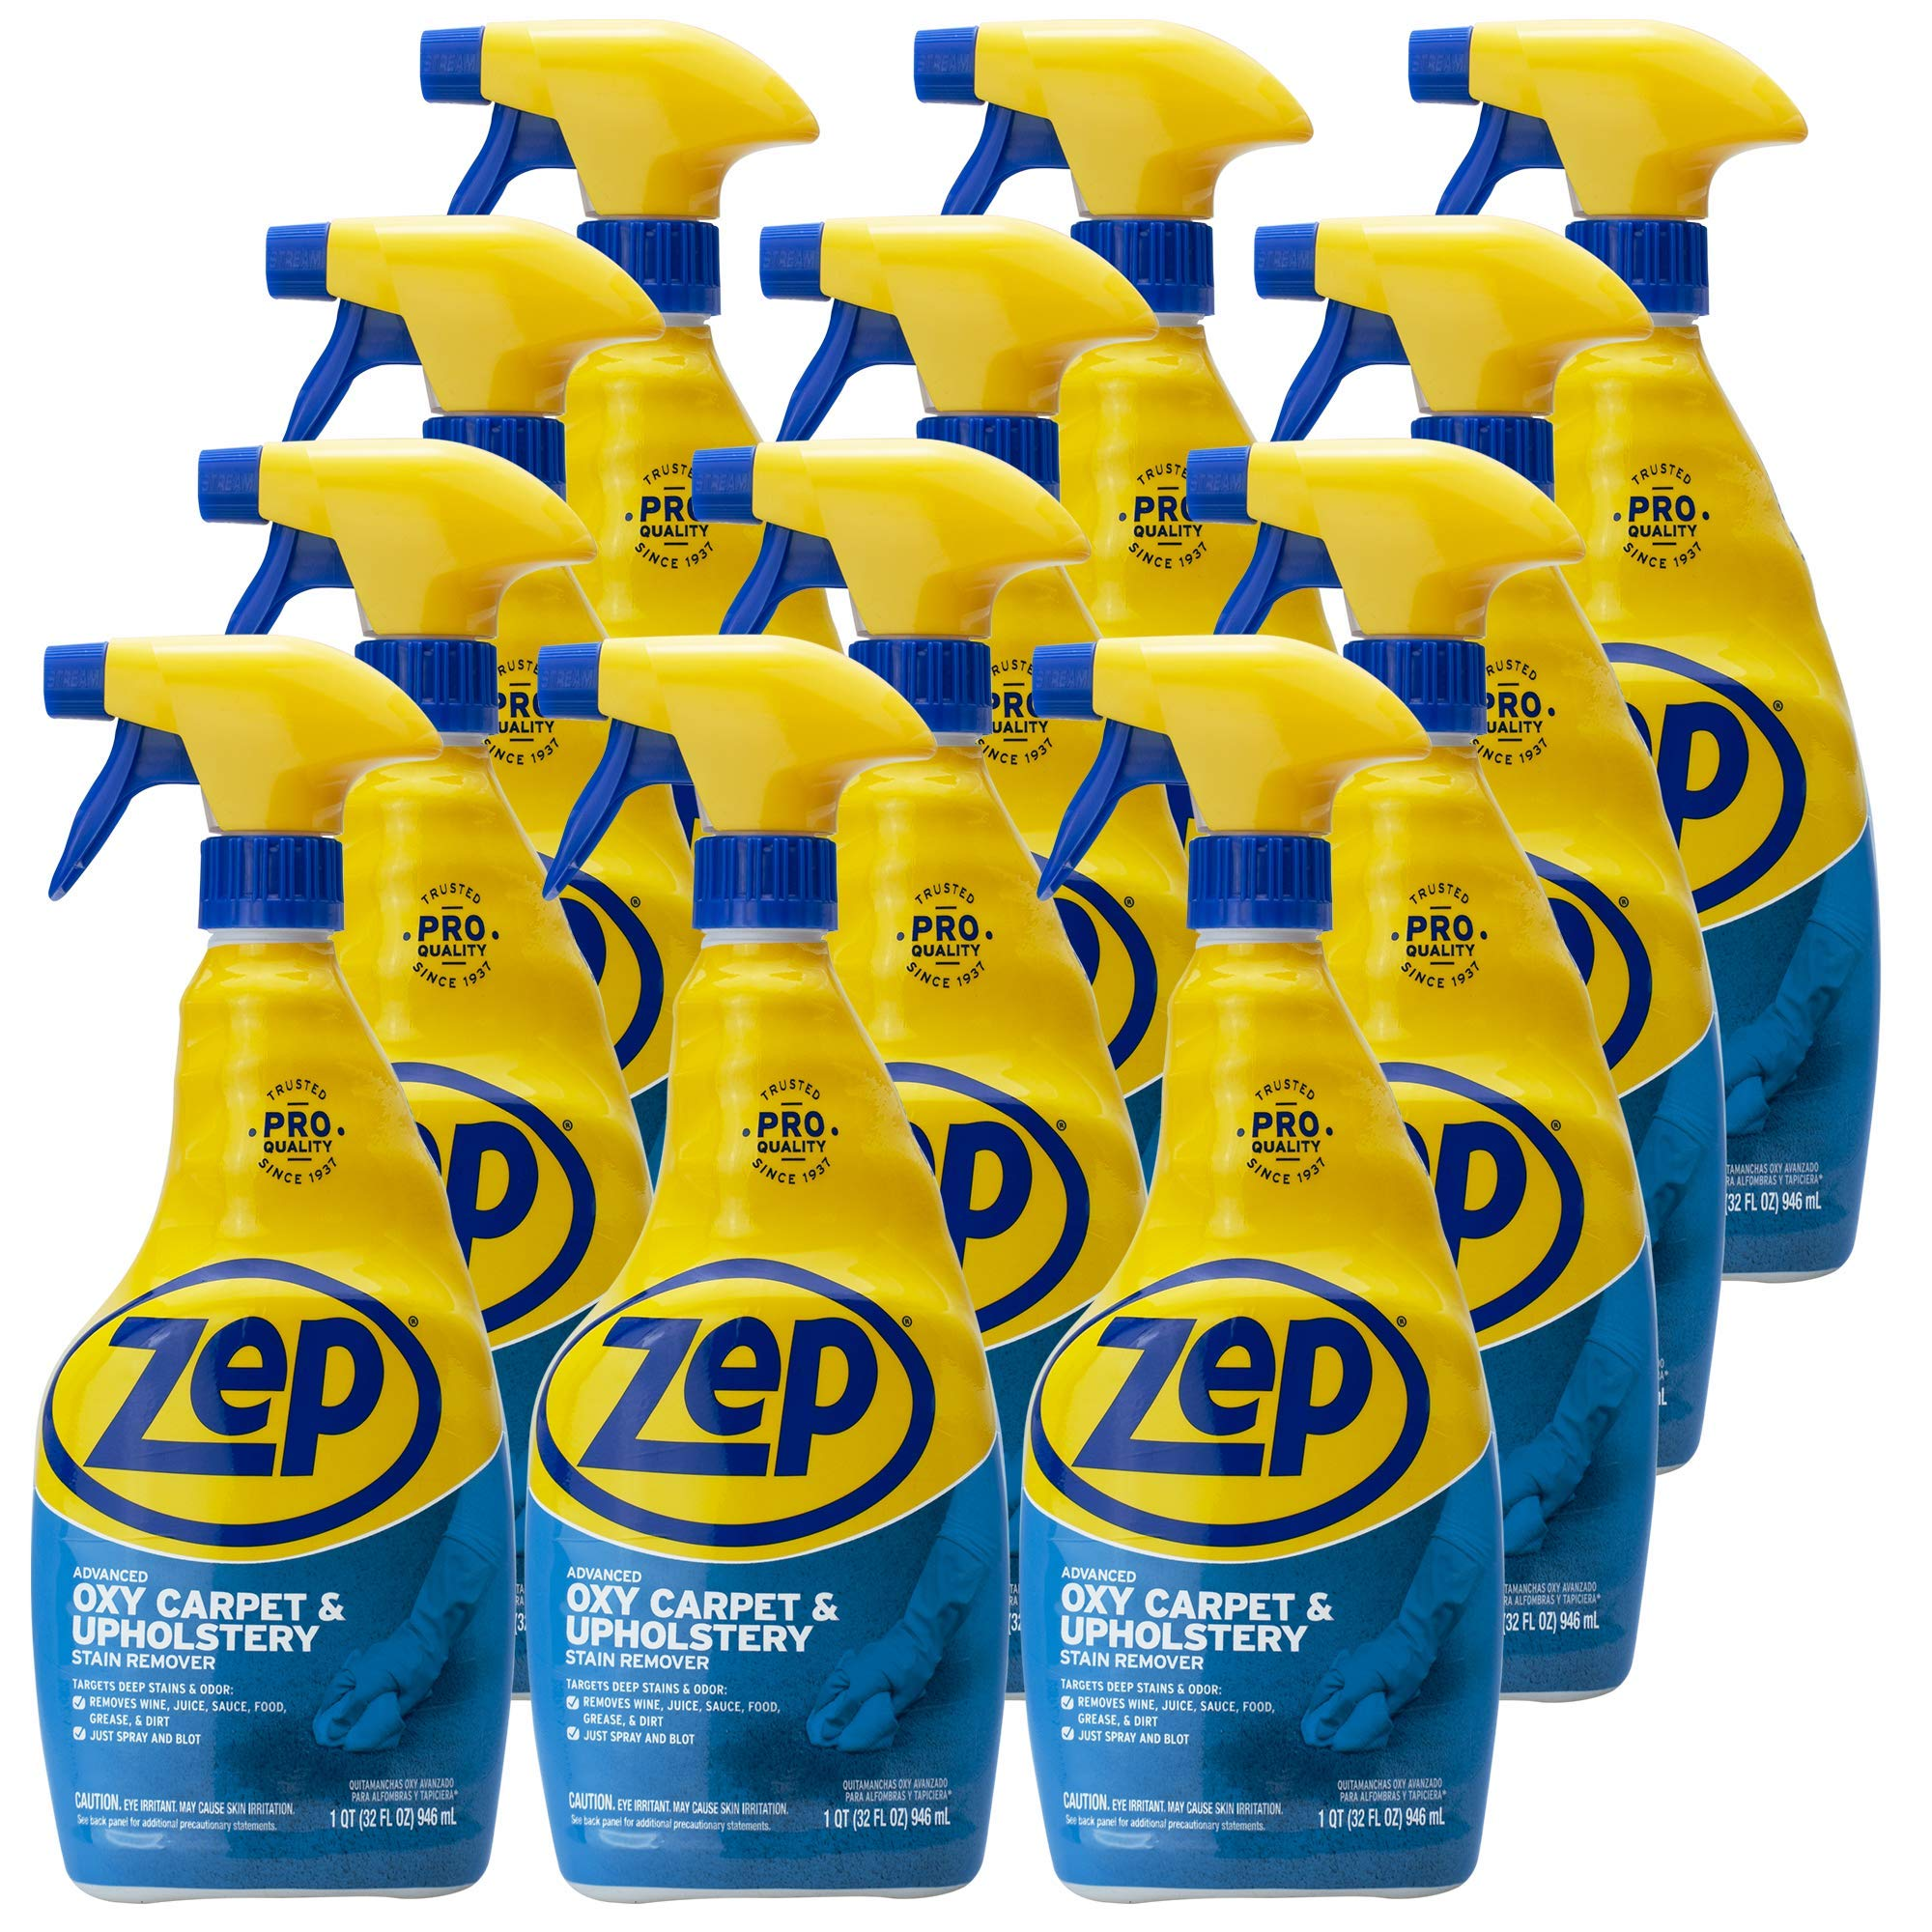 Zep Advanced Oxy Carpet Cleaner 32 Ounce ZUOXSR32 (Case of 12)